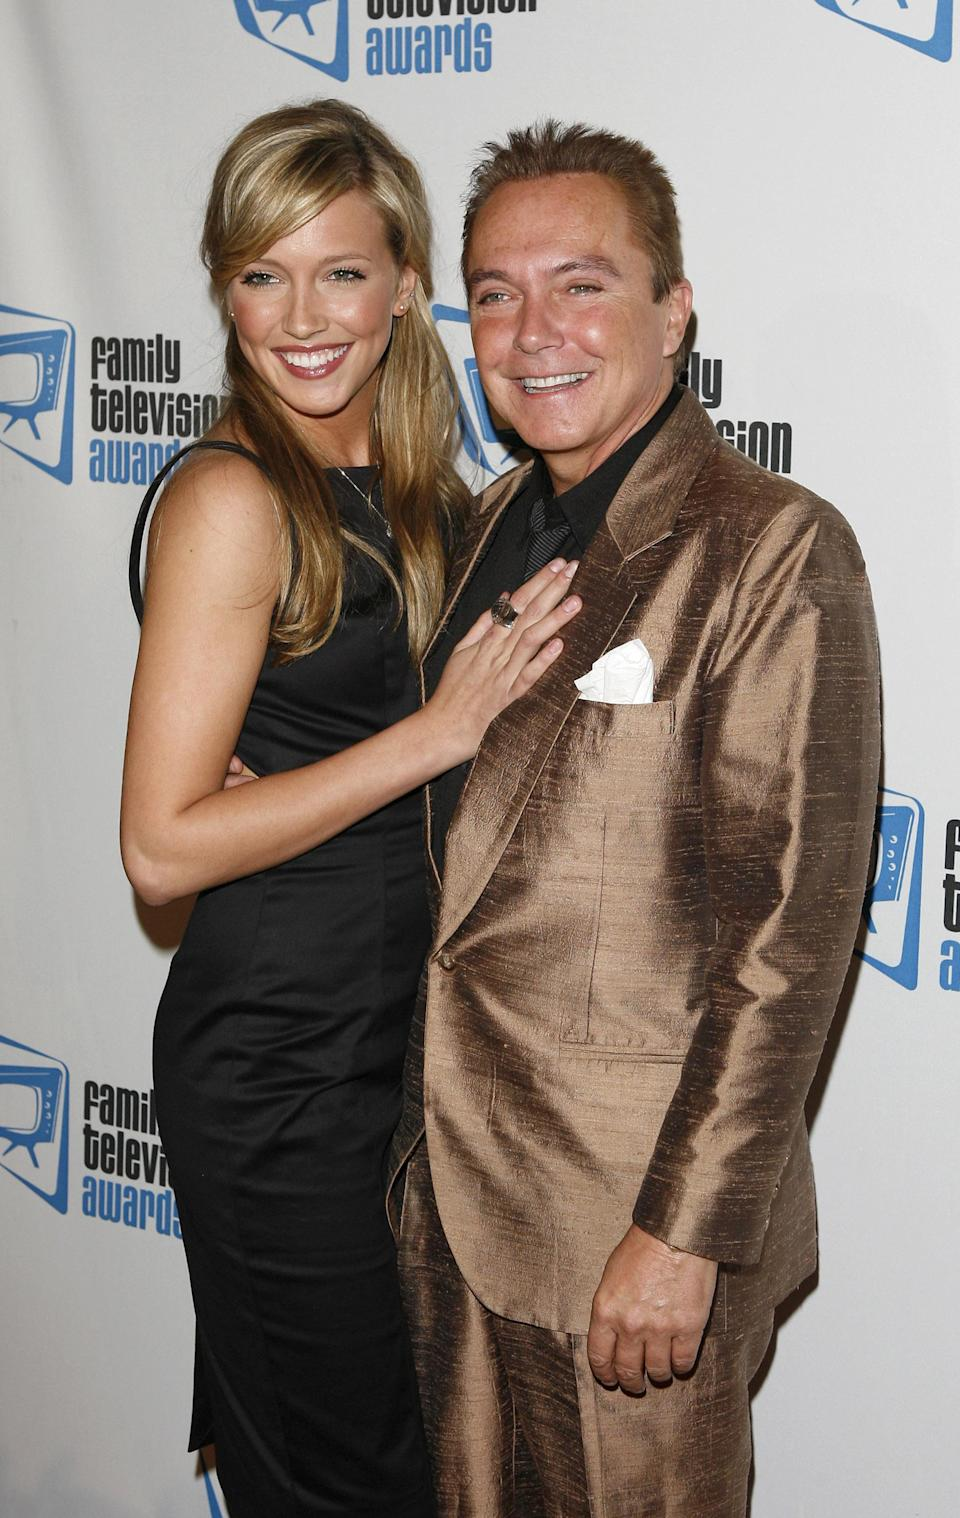 David Cassidy with his daughter Katie Cassidy at the Family Television Awards held at the Beverly Hilton Hotel on November 28, 2007. (Photo: Jean Baptiste Lacroix/WireImage)